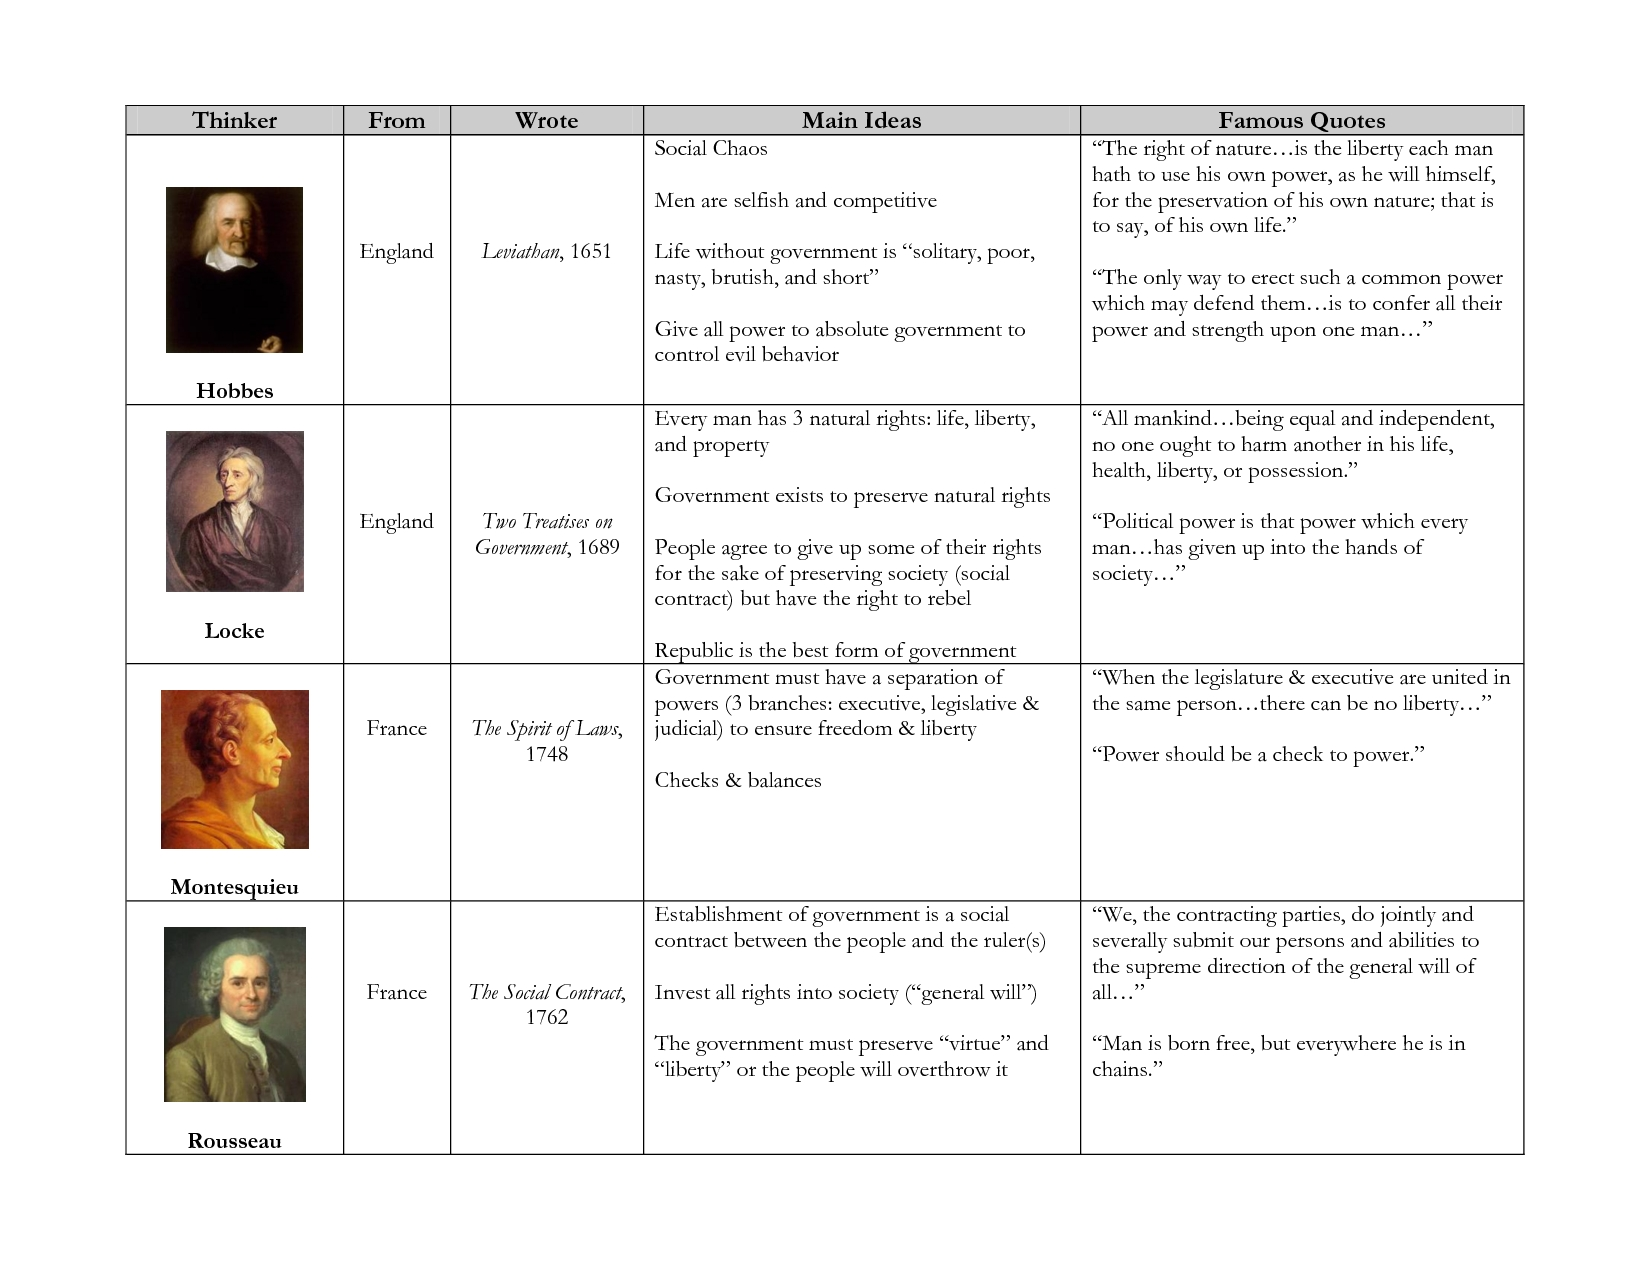 enlightenment thinkers chart3yk4i0u. has the enlightenment